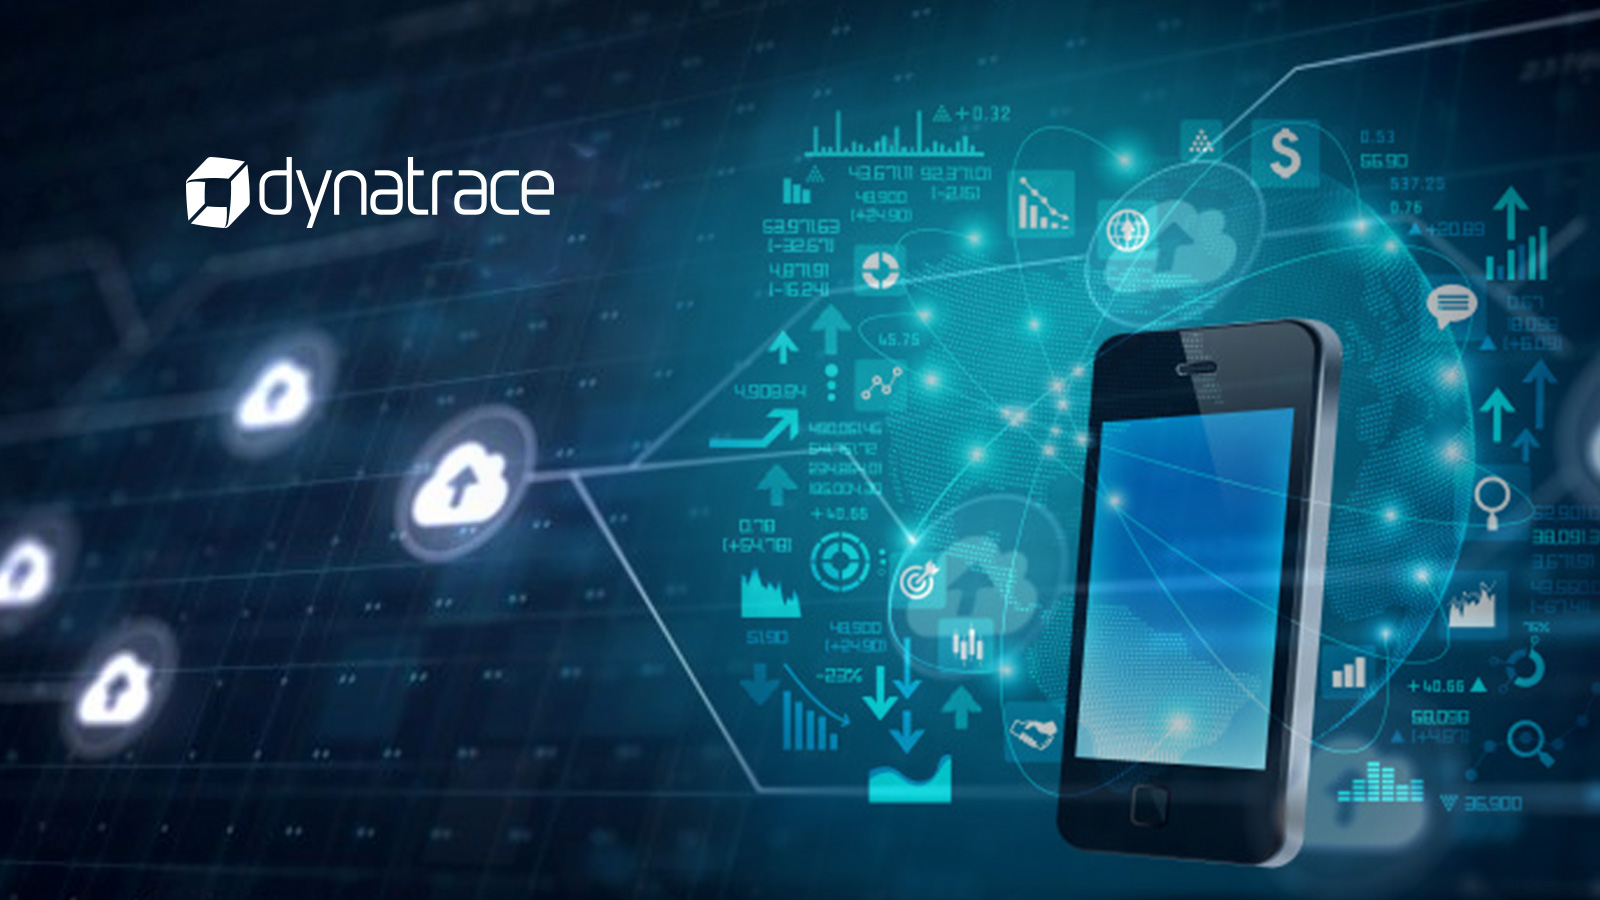 Dynatrace Adds Session Replay to Its Digital Experience